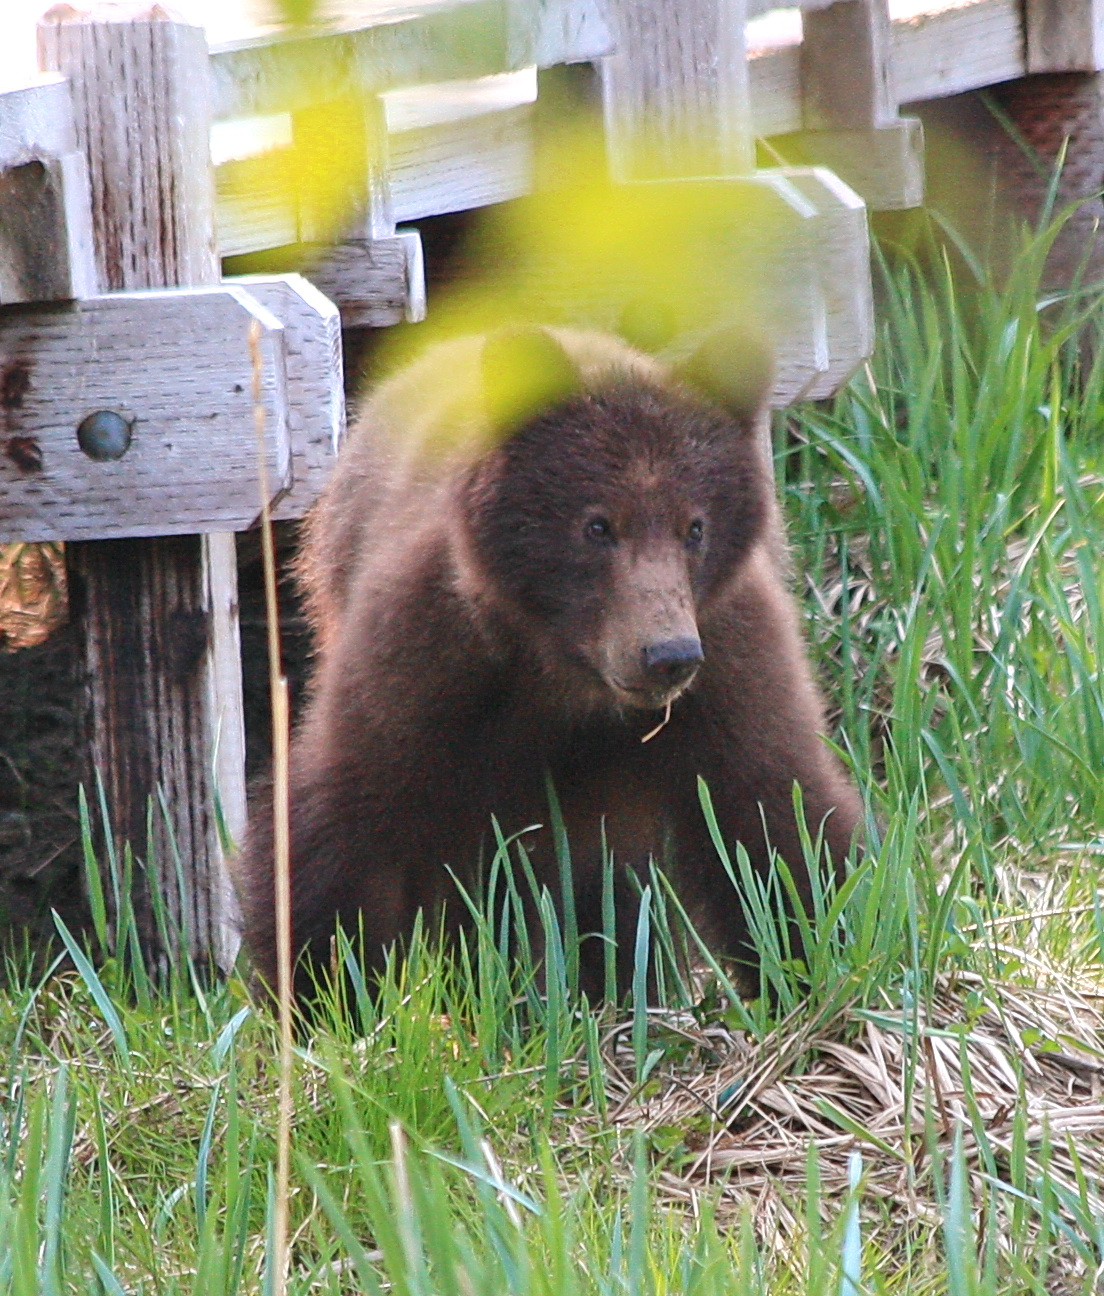 Trooper shoots aggressive brown bear in Starrigavan campground